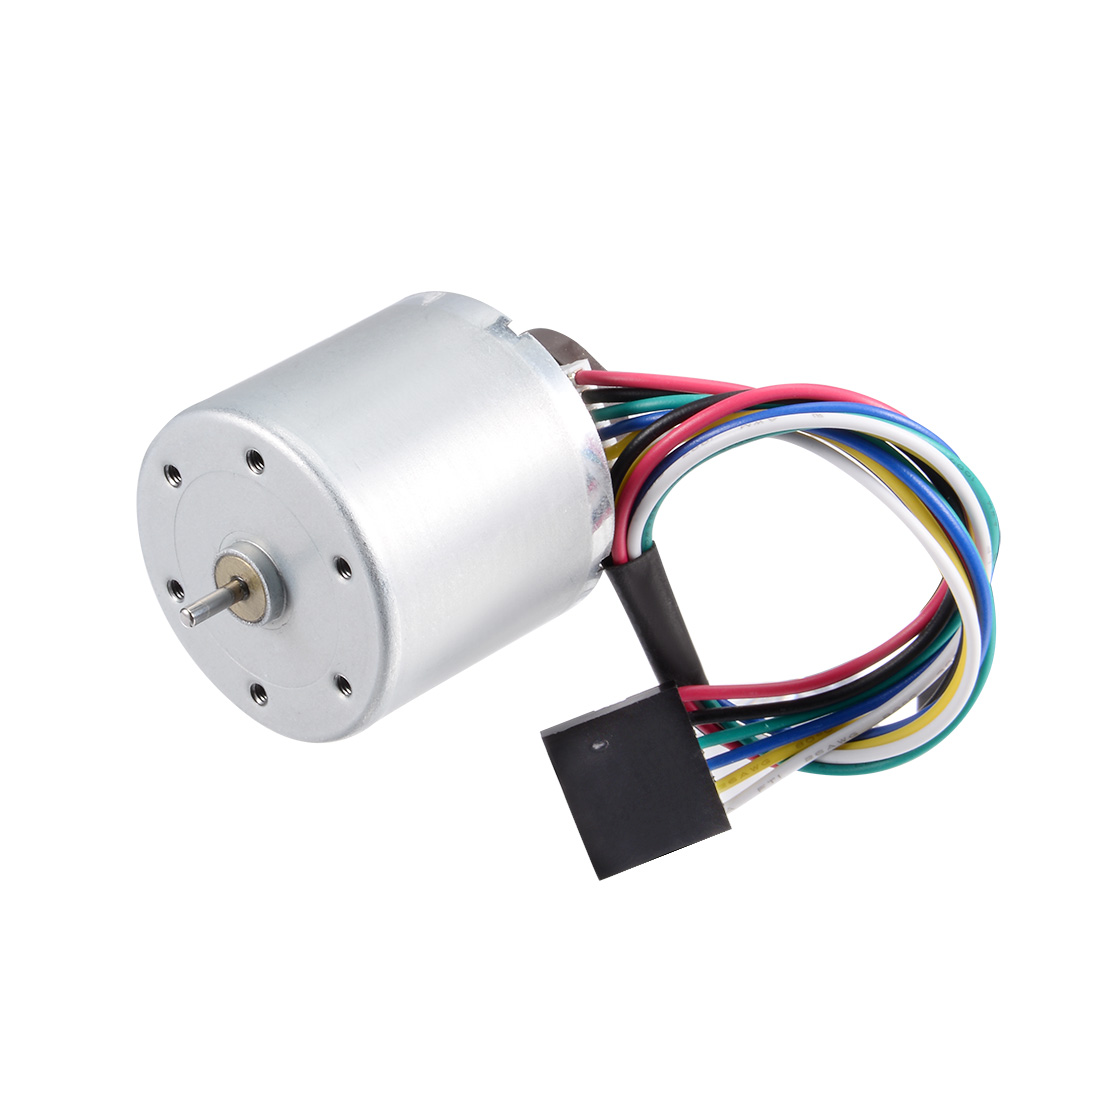 Small Motor DC 12V 10000RPM 6 Wire High Speed Encoder Motor for DIY Toy Cars